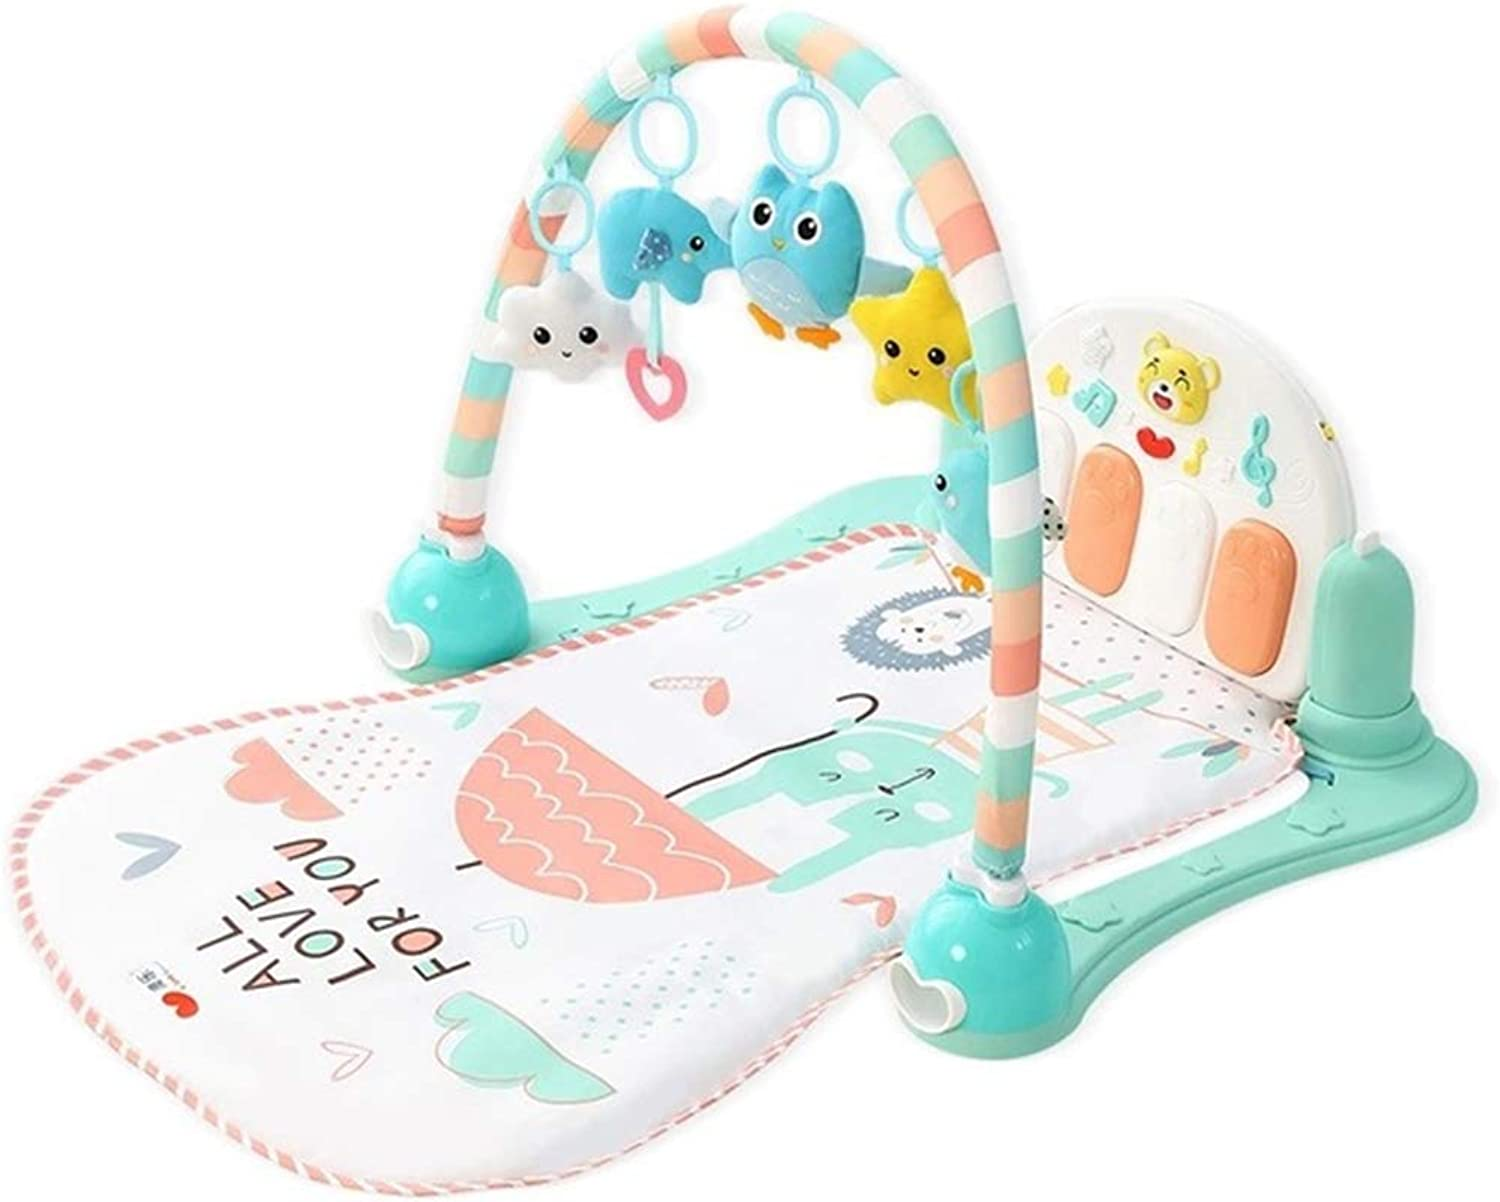 Mr. Fragile Baby Playmat,Play Gym,Fun Toy,Musical Activity Gym, for Infants Toddlers Newborn 036 Months,for baby gift